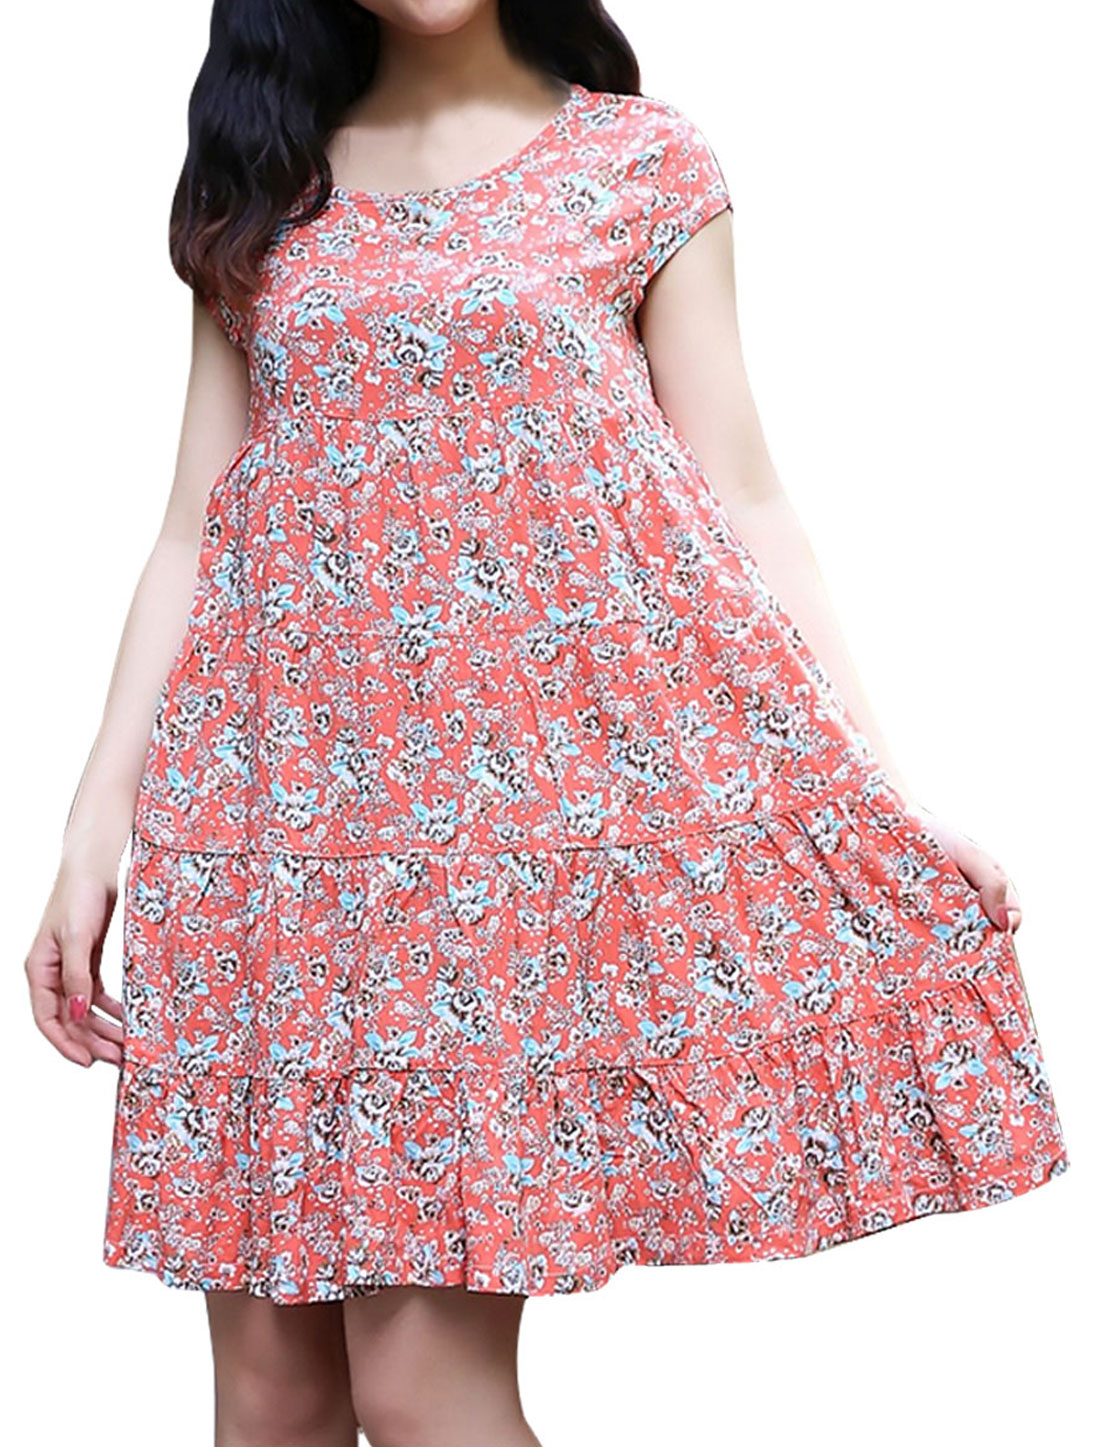 Maternity Floral Prints Round Neck Fashion Loose Dress Pink M